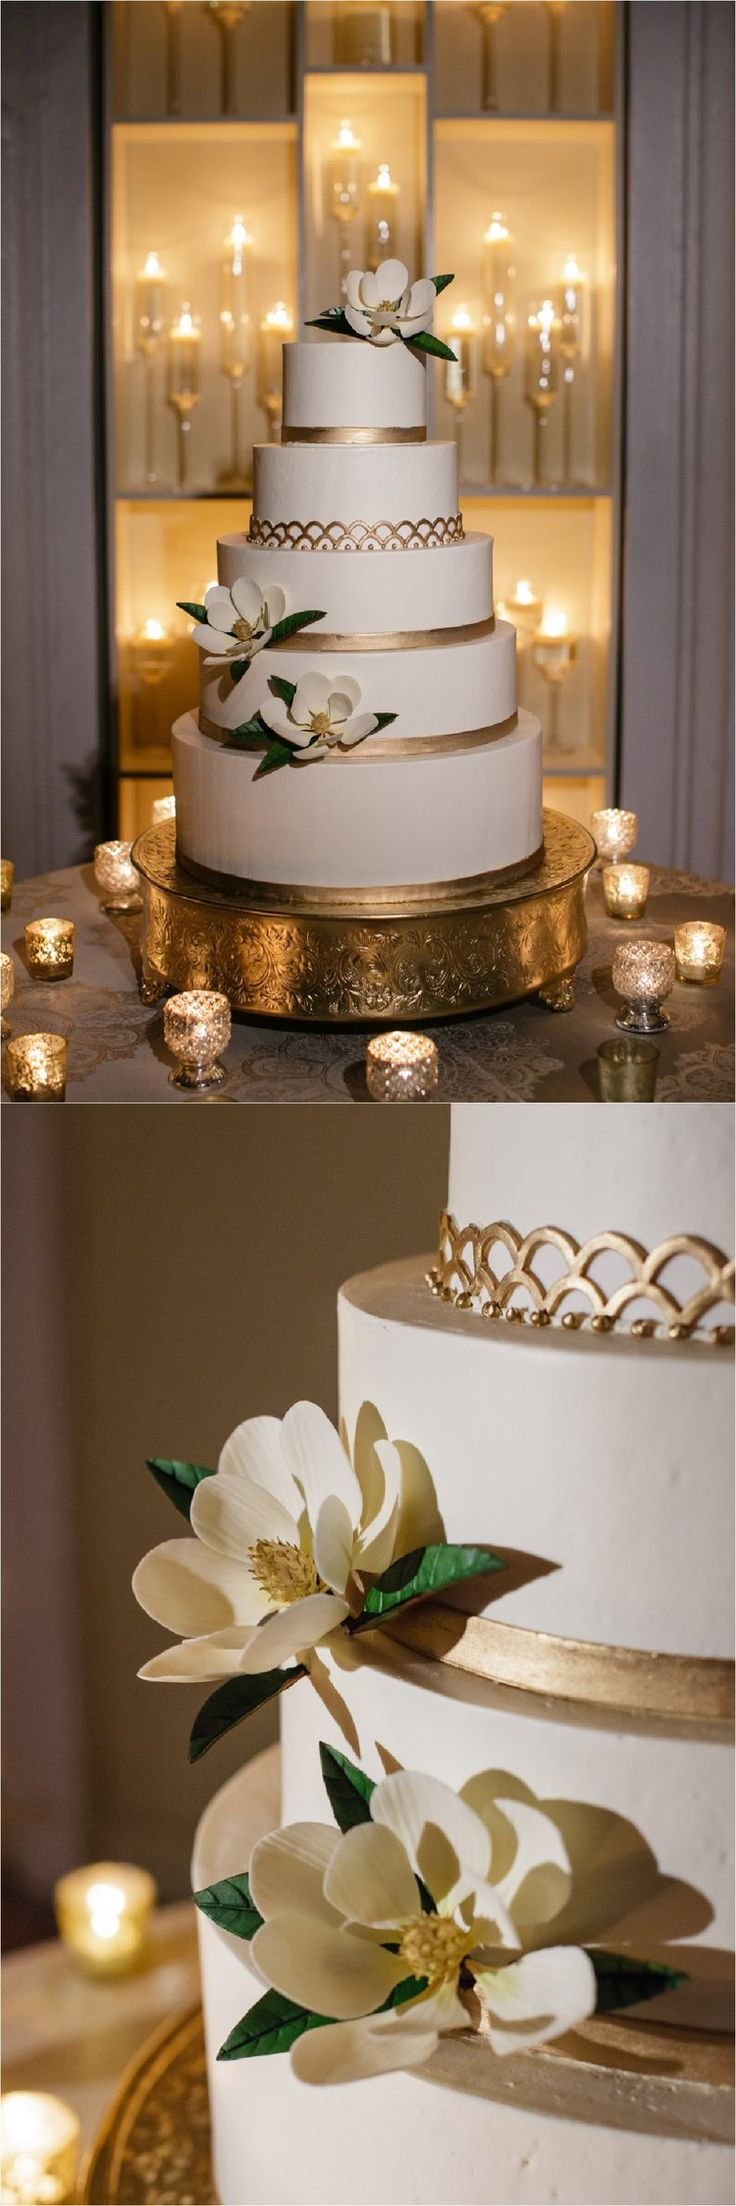 8 Champagne And White Contemporary Wedding Cakes Photo Champagne